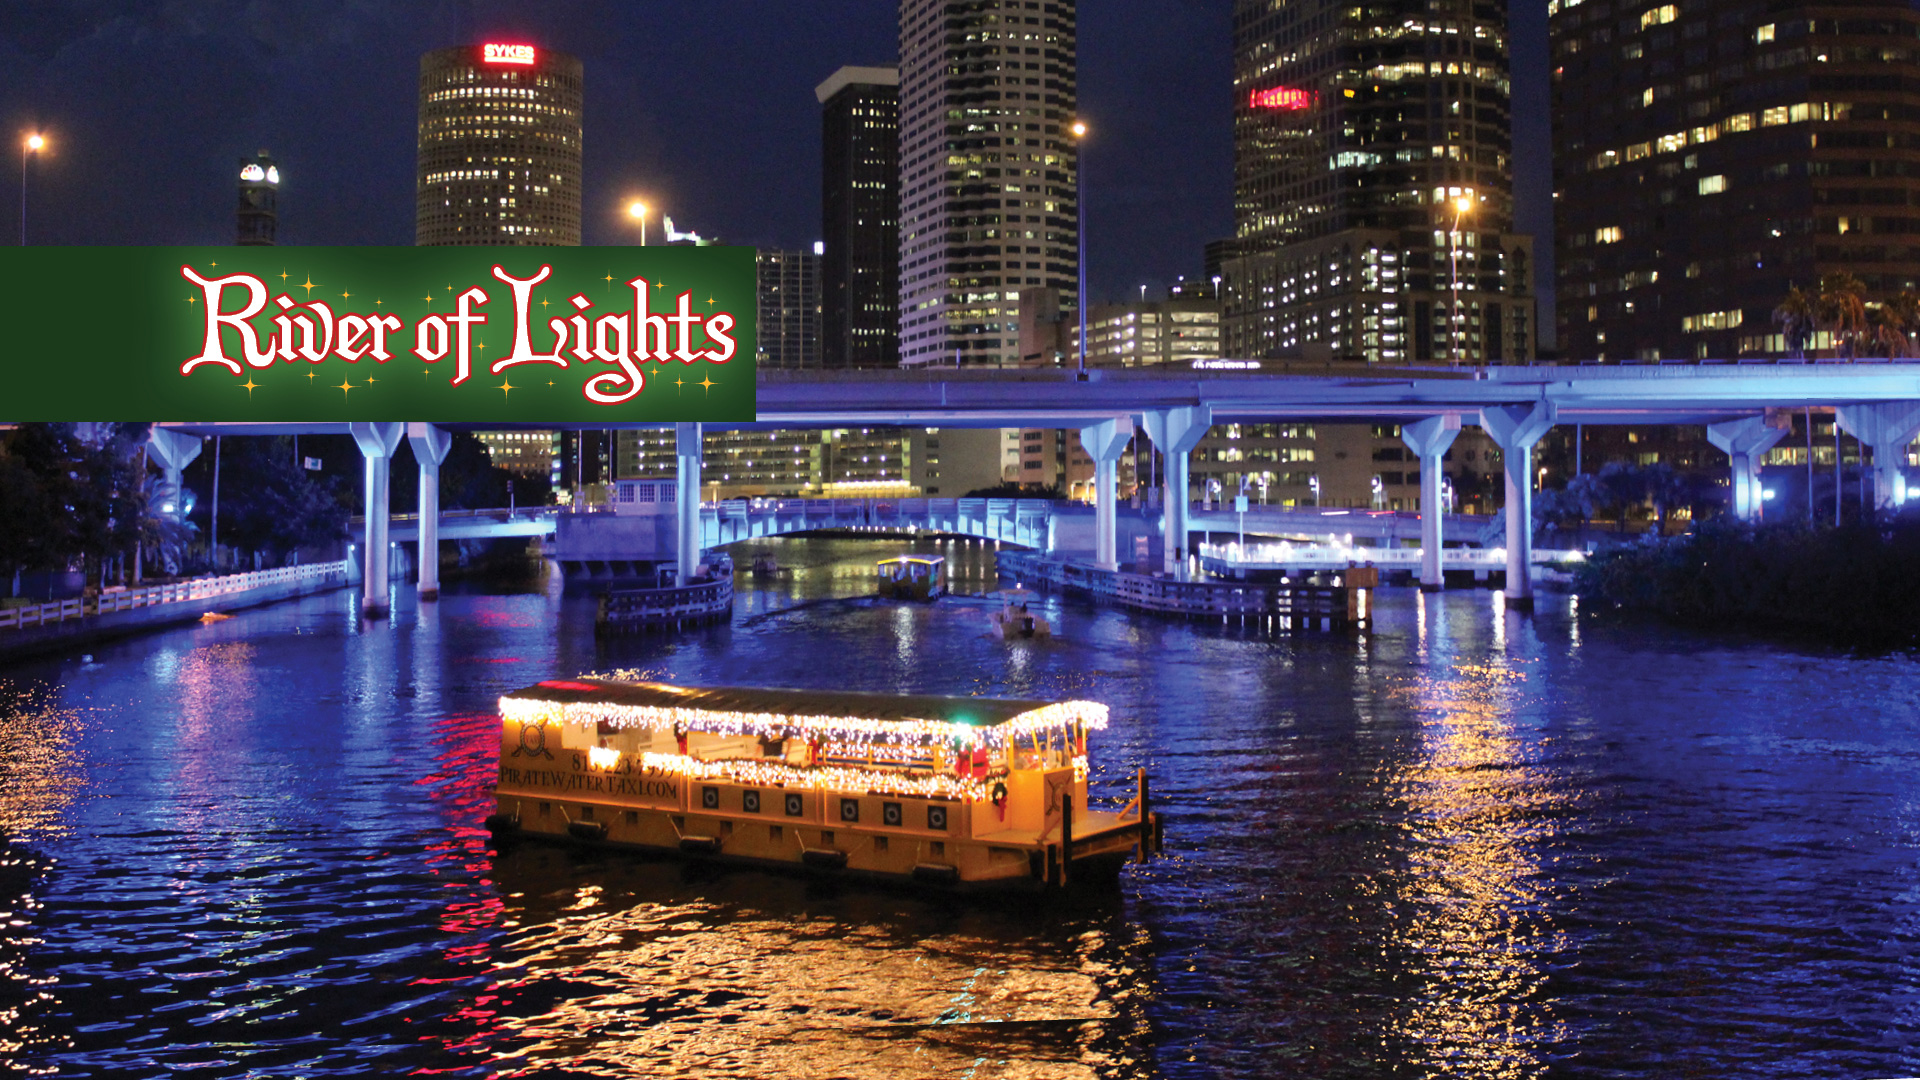 Holiday River of Lights